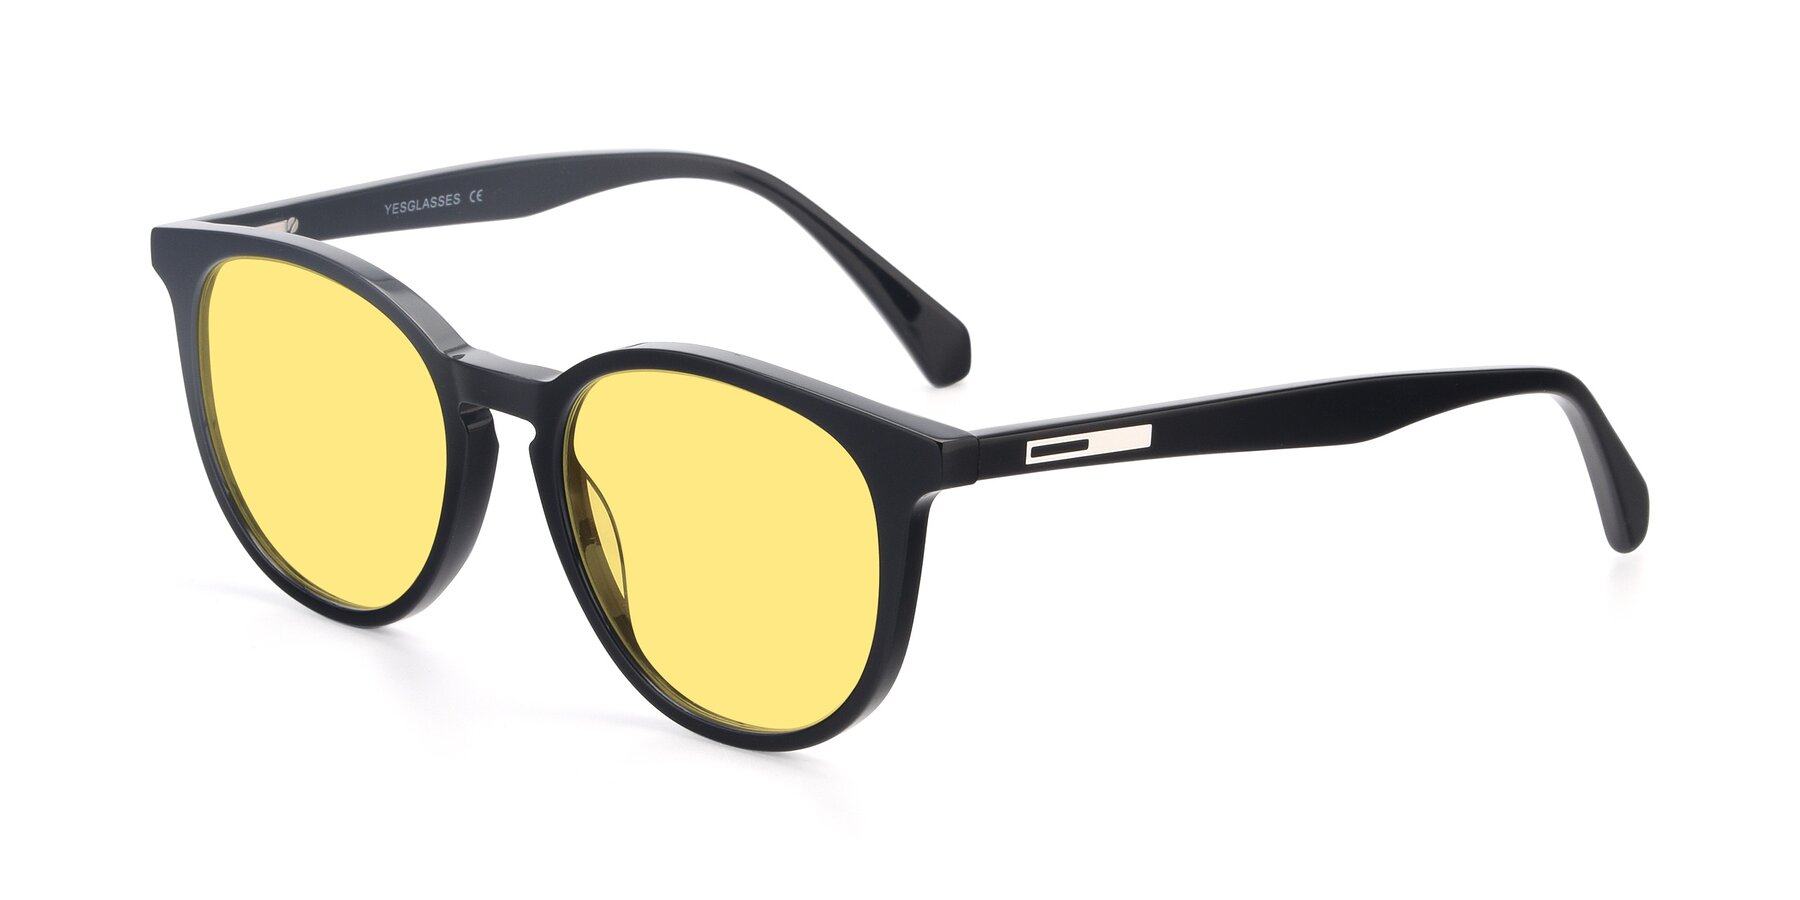 Angle of 17721 in Black with Medium Yellow Tinted Lenses